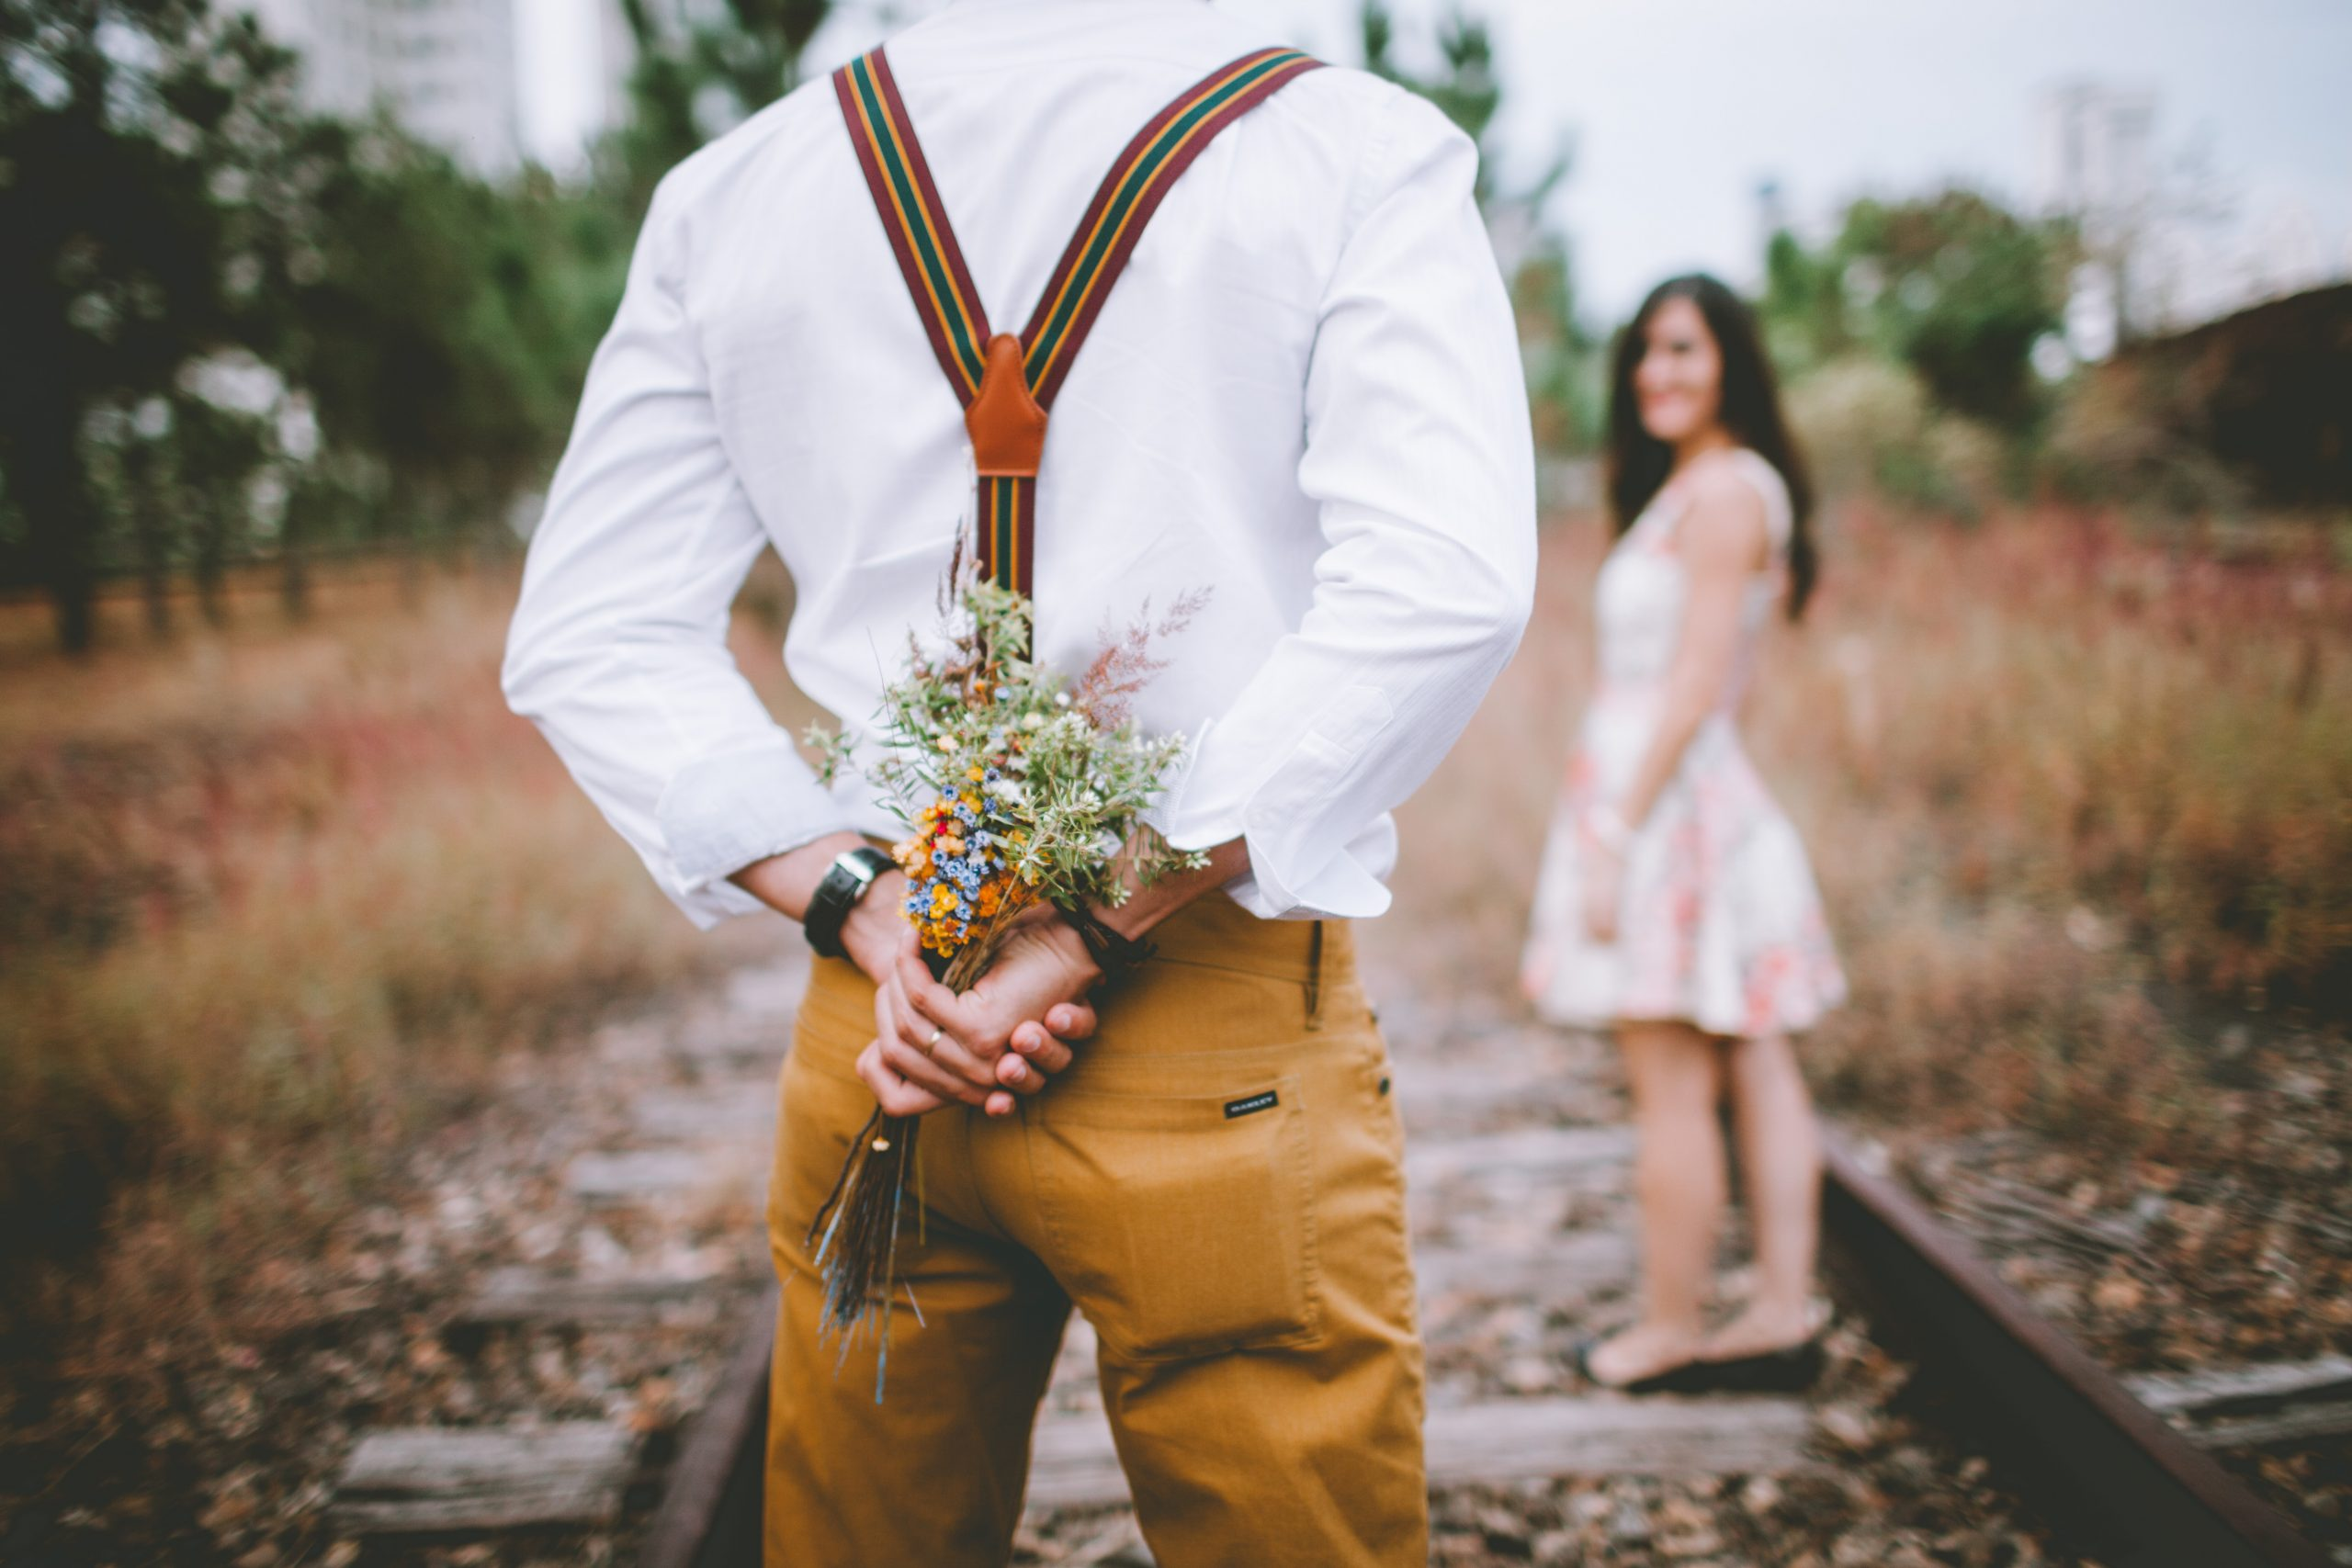 A Step By Step Plan on How to Give Your Relationship a Second Chance